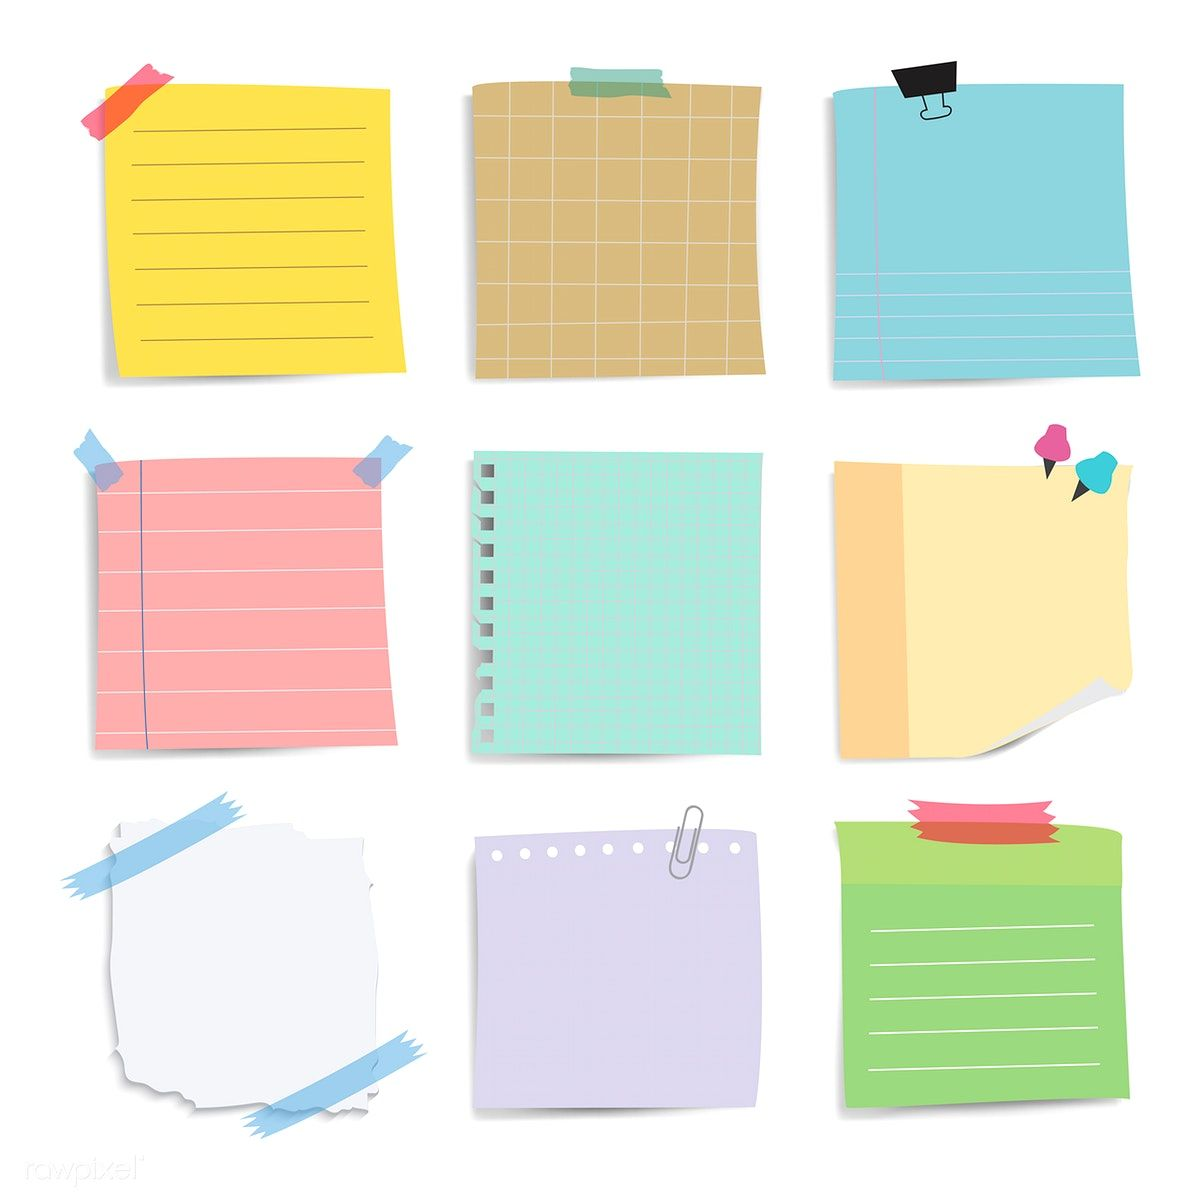 Download free vector of Colorful reminder paper notes vector set 524955